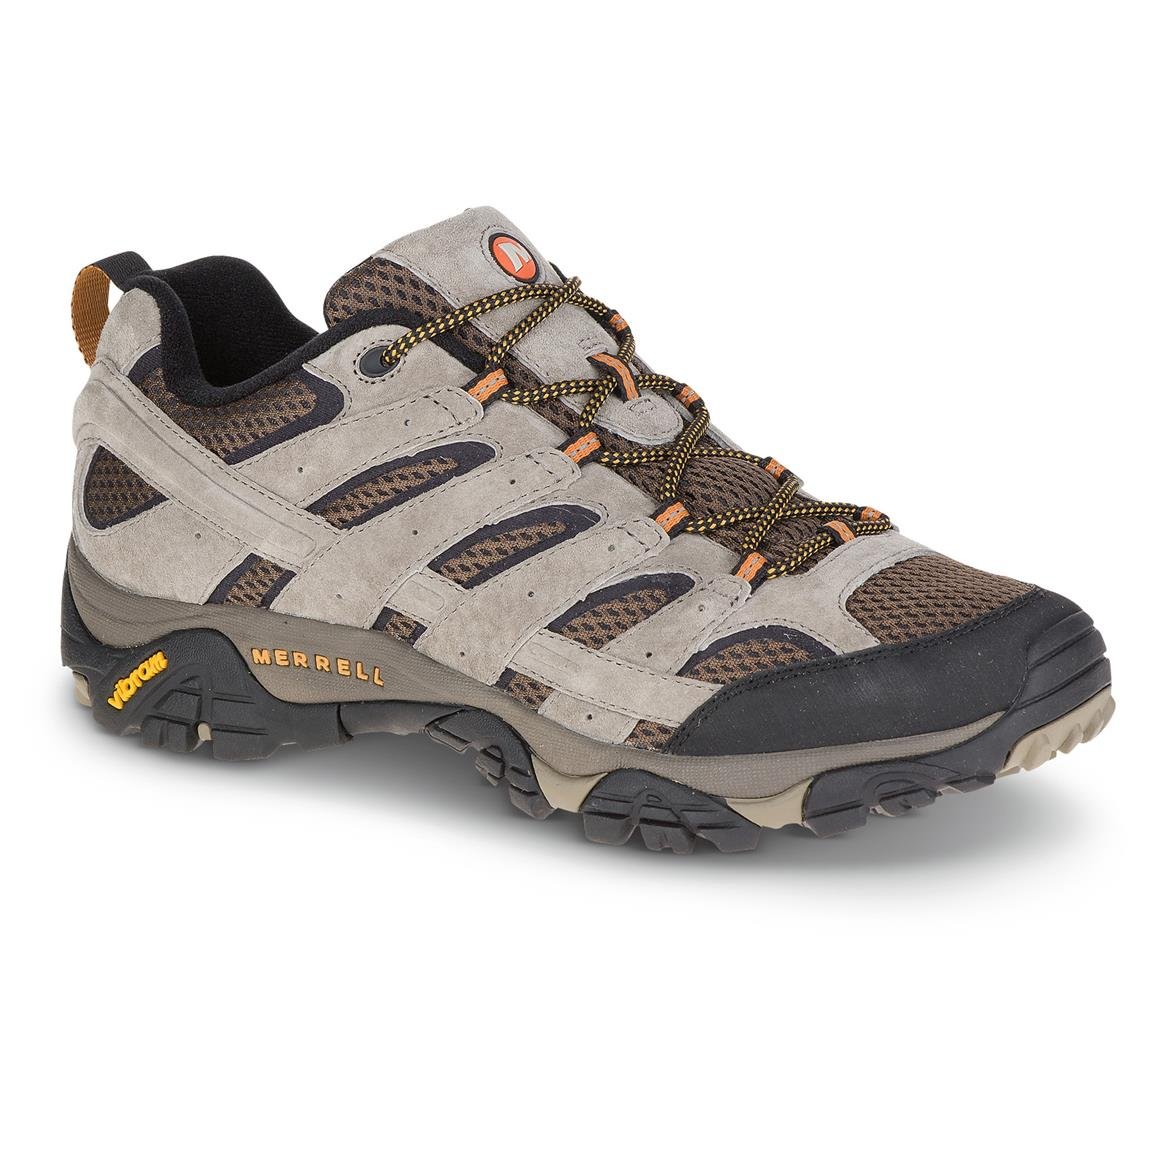 Merrell Men's Moab 2 Vent Hiking Shoes, Walnut